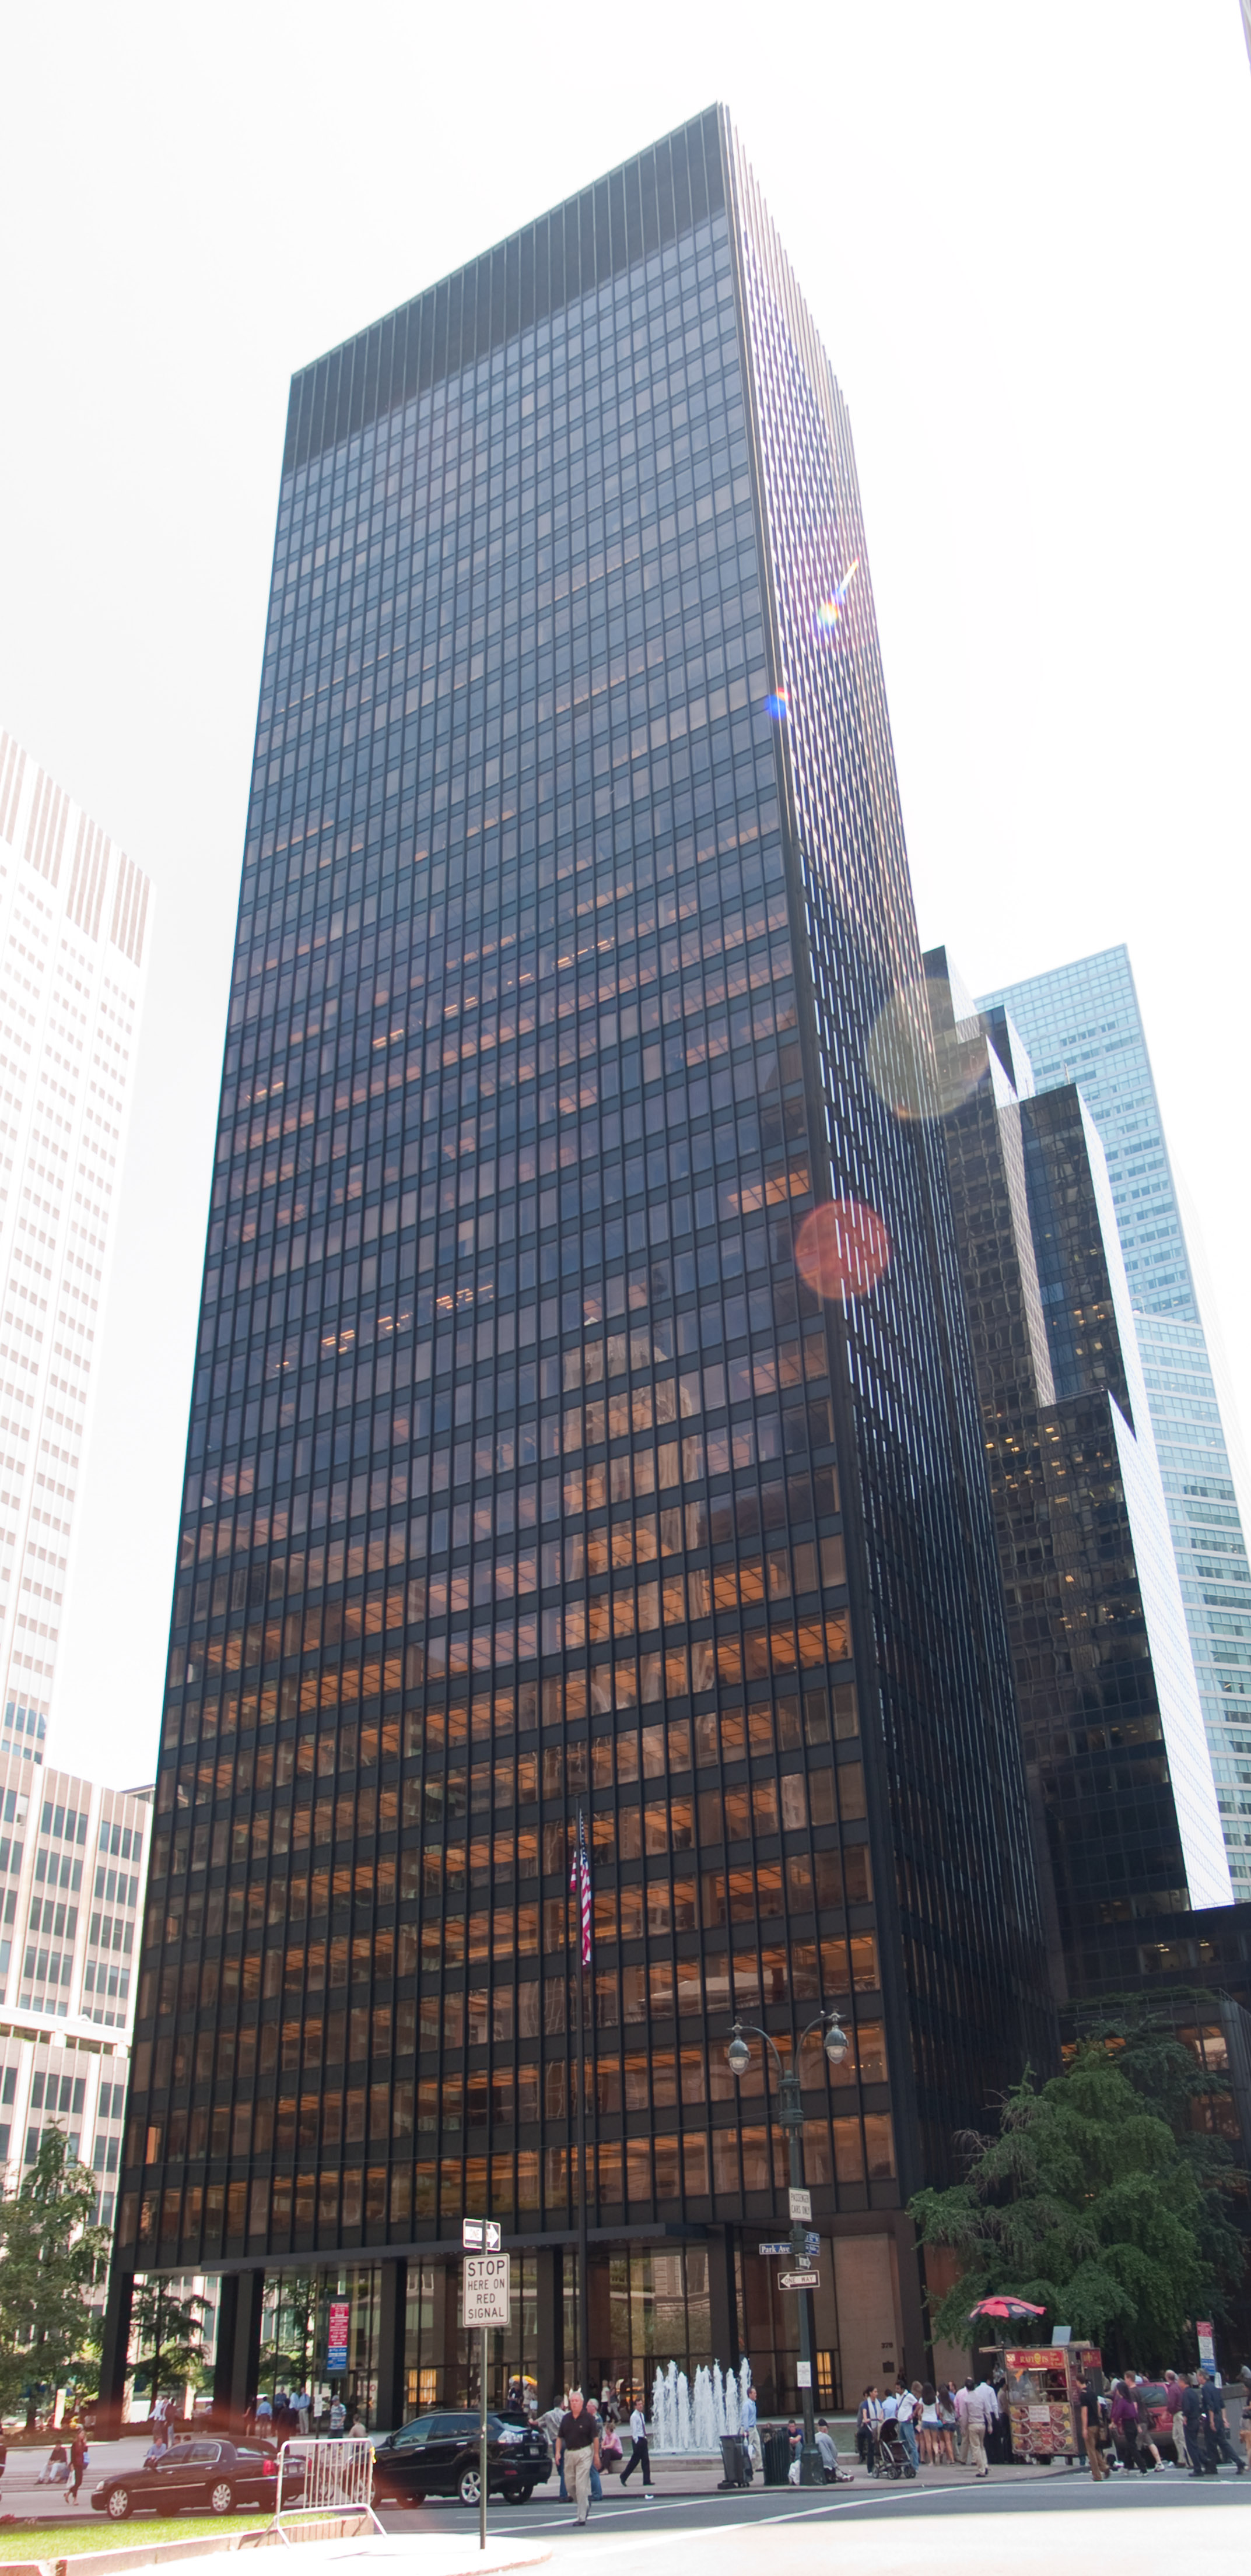 Seagram building ludwig mies van der rohe new york united states